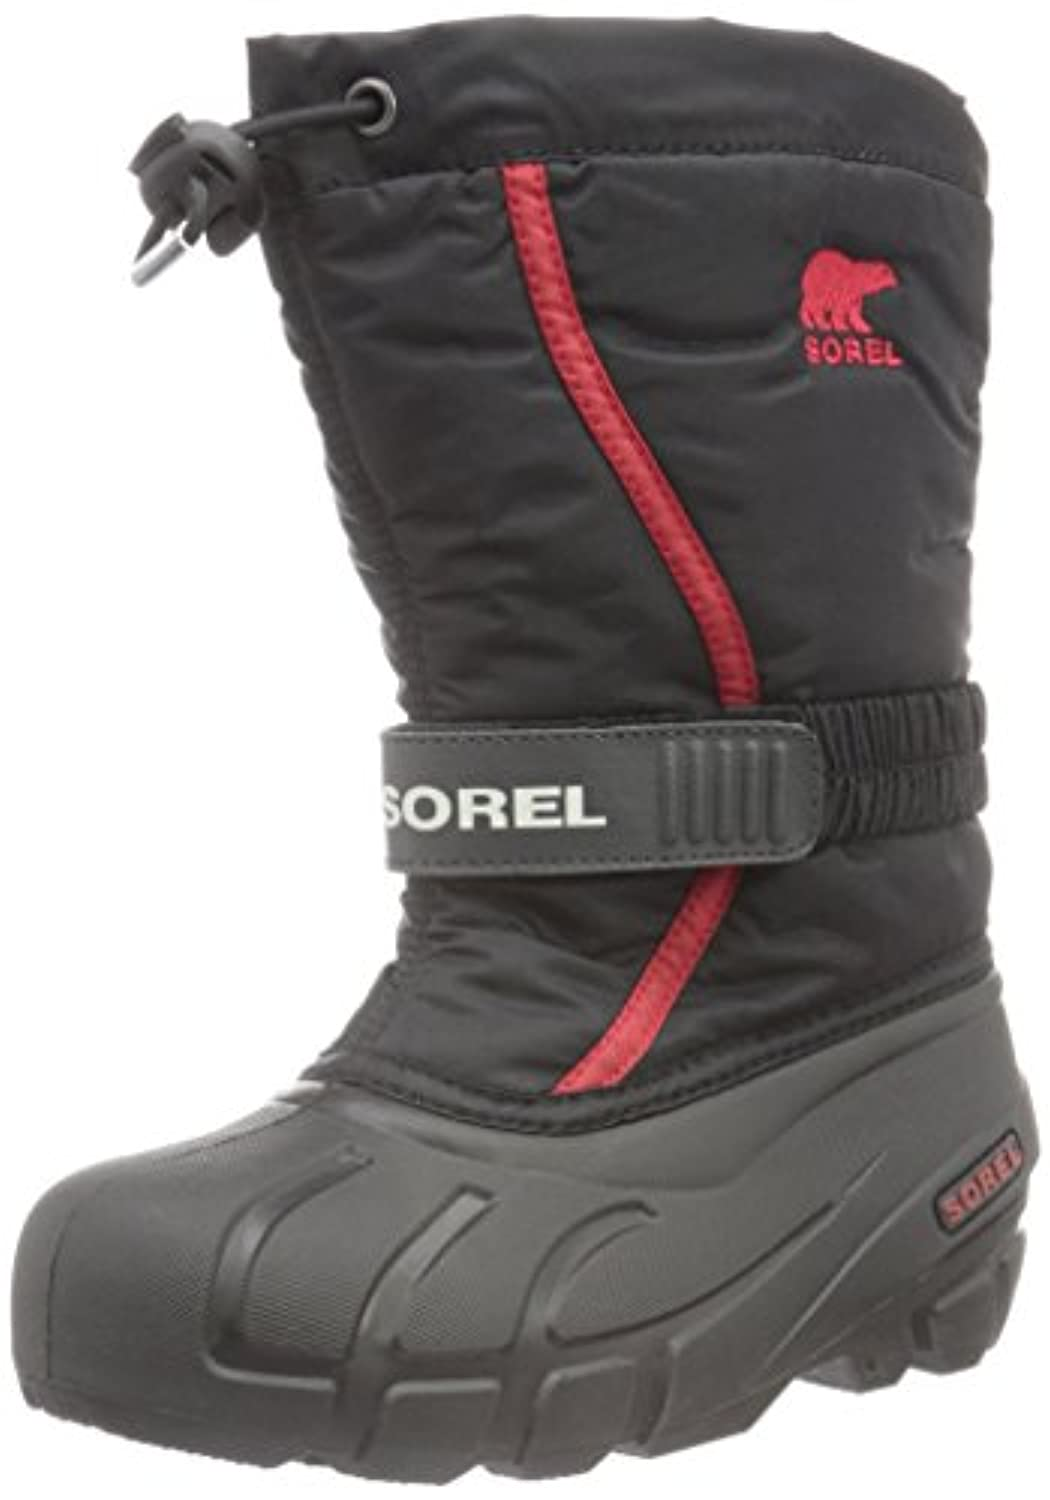 Sorel Unisex Kids Youth Flurry Snow Boots, Black (Black, Bright Red 015), 1 Child UK 33 EU